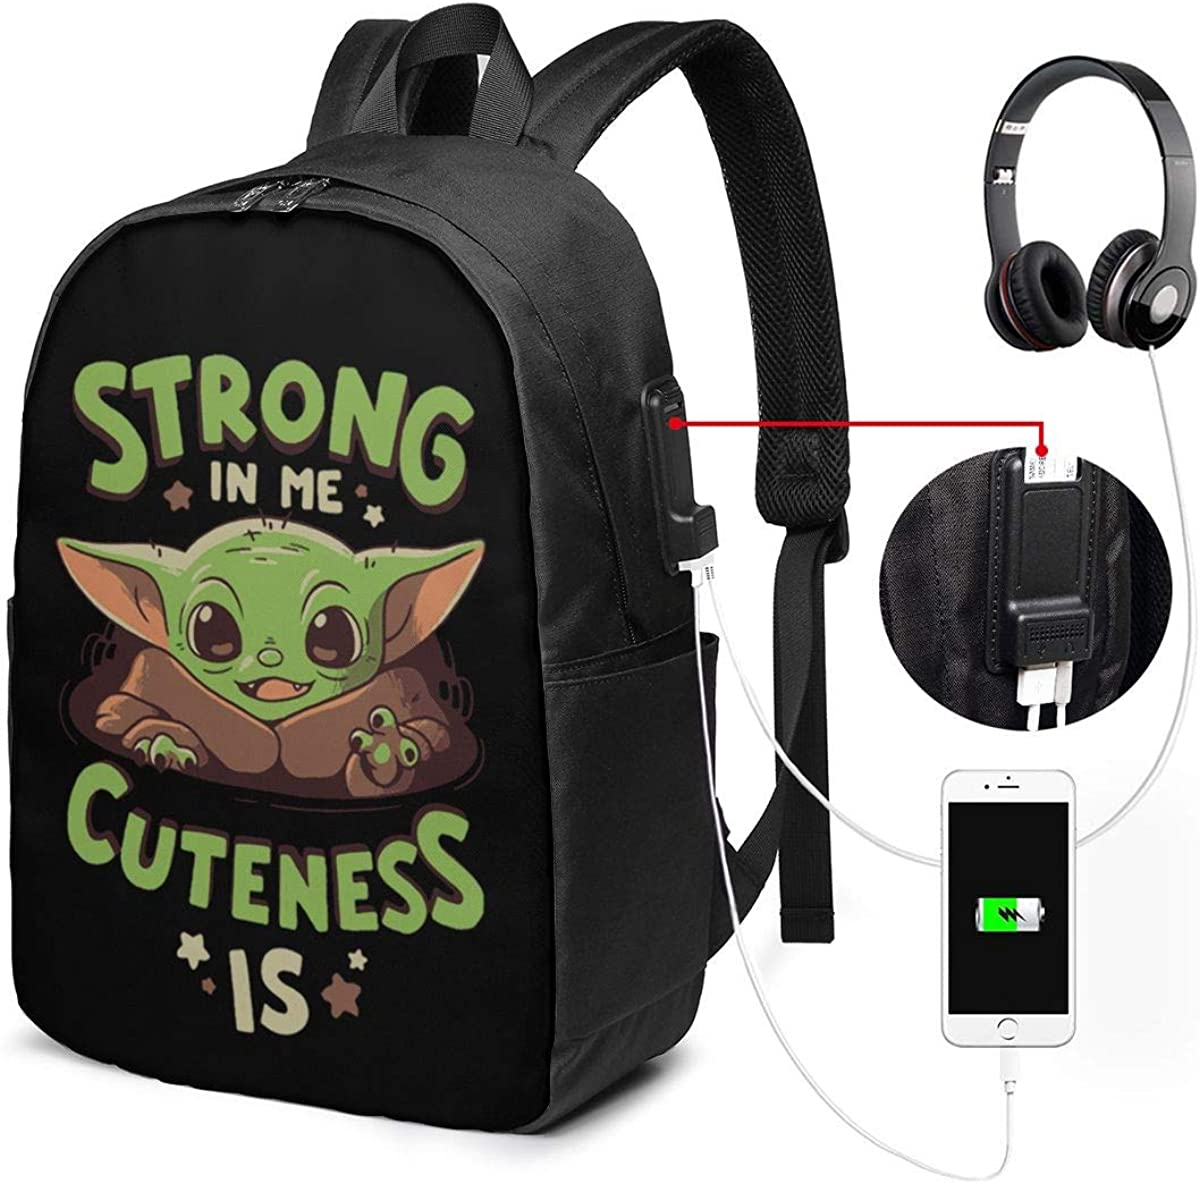 Cute Baby Alien Strong in Me Cuteness is 17in Travel Backpack USB Charging Port, College School Bookbag Laptop Backpack